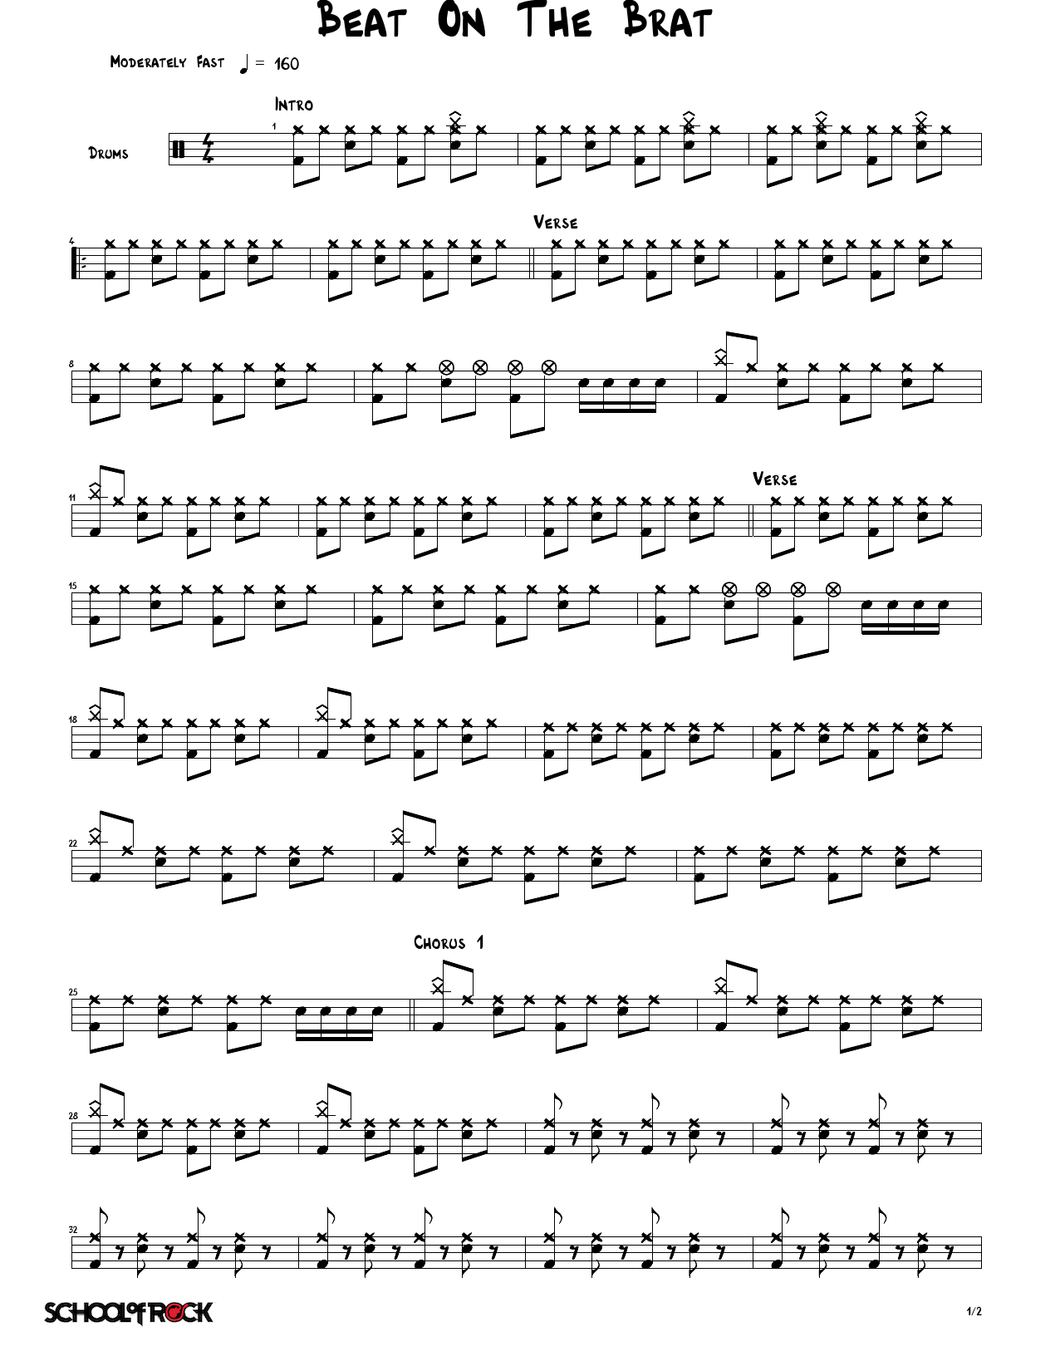 Beat On The Brat - The Ramones - Full Drum Transcription / Drum Sheet Music - SheetMusicDirect SORD